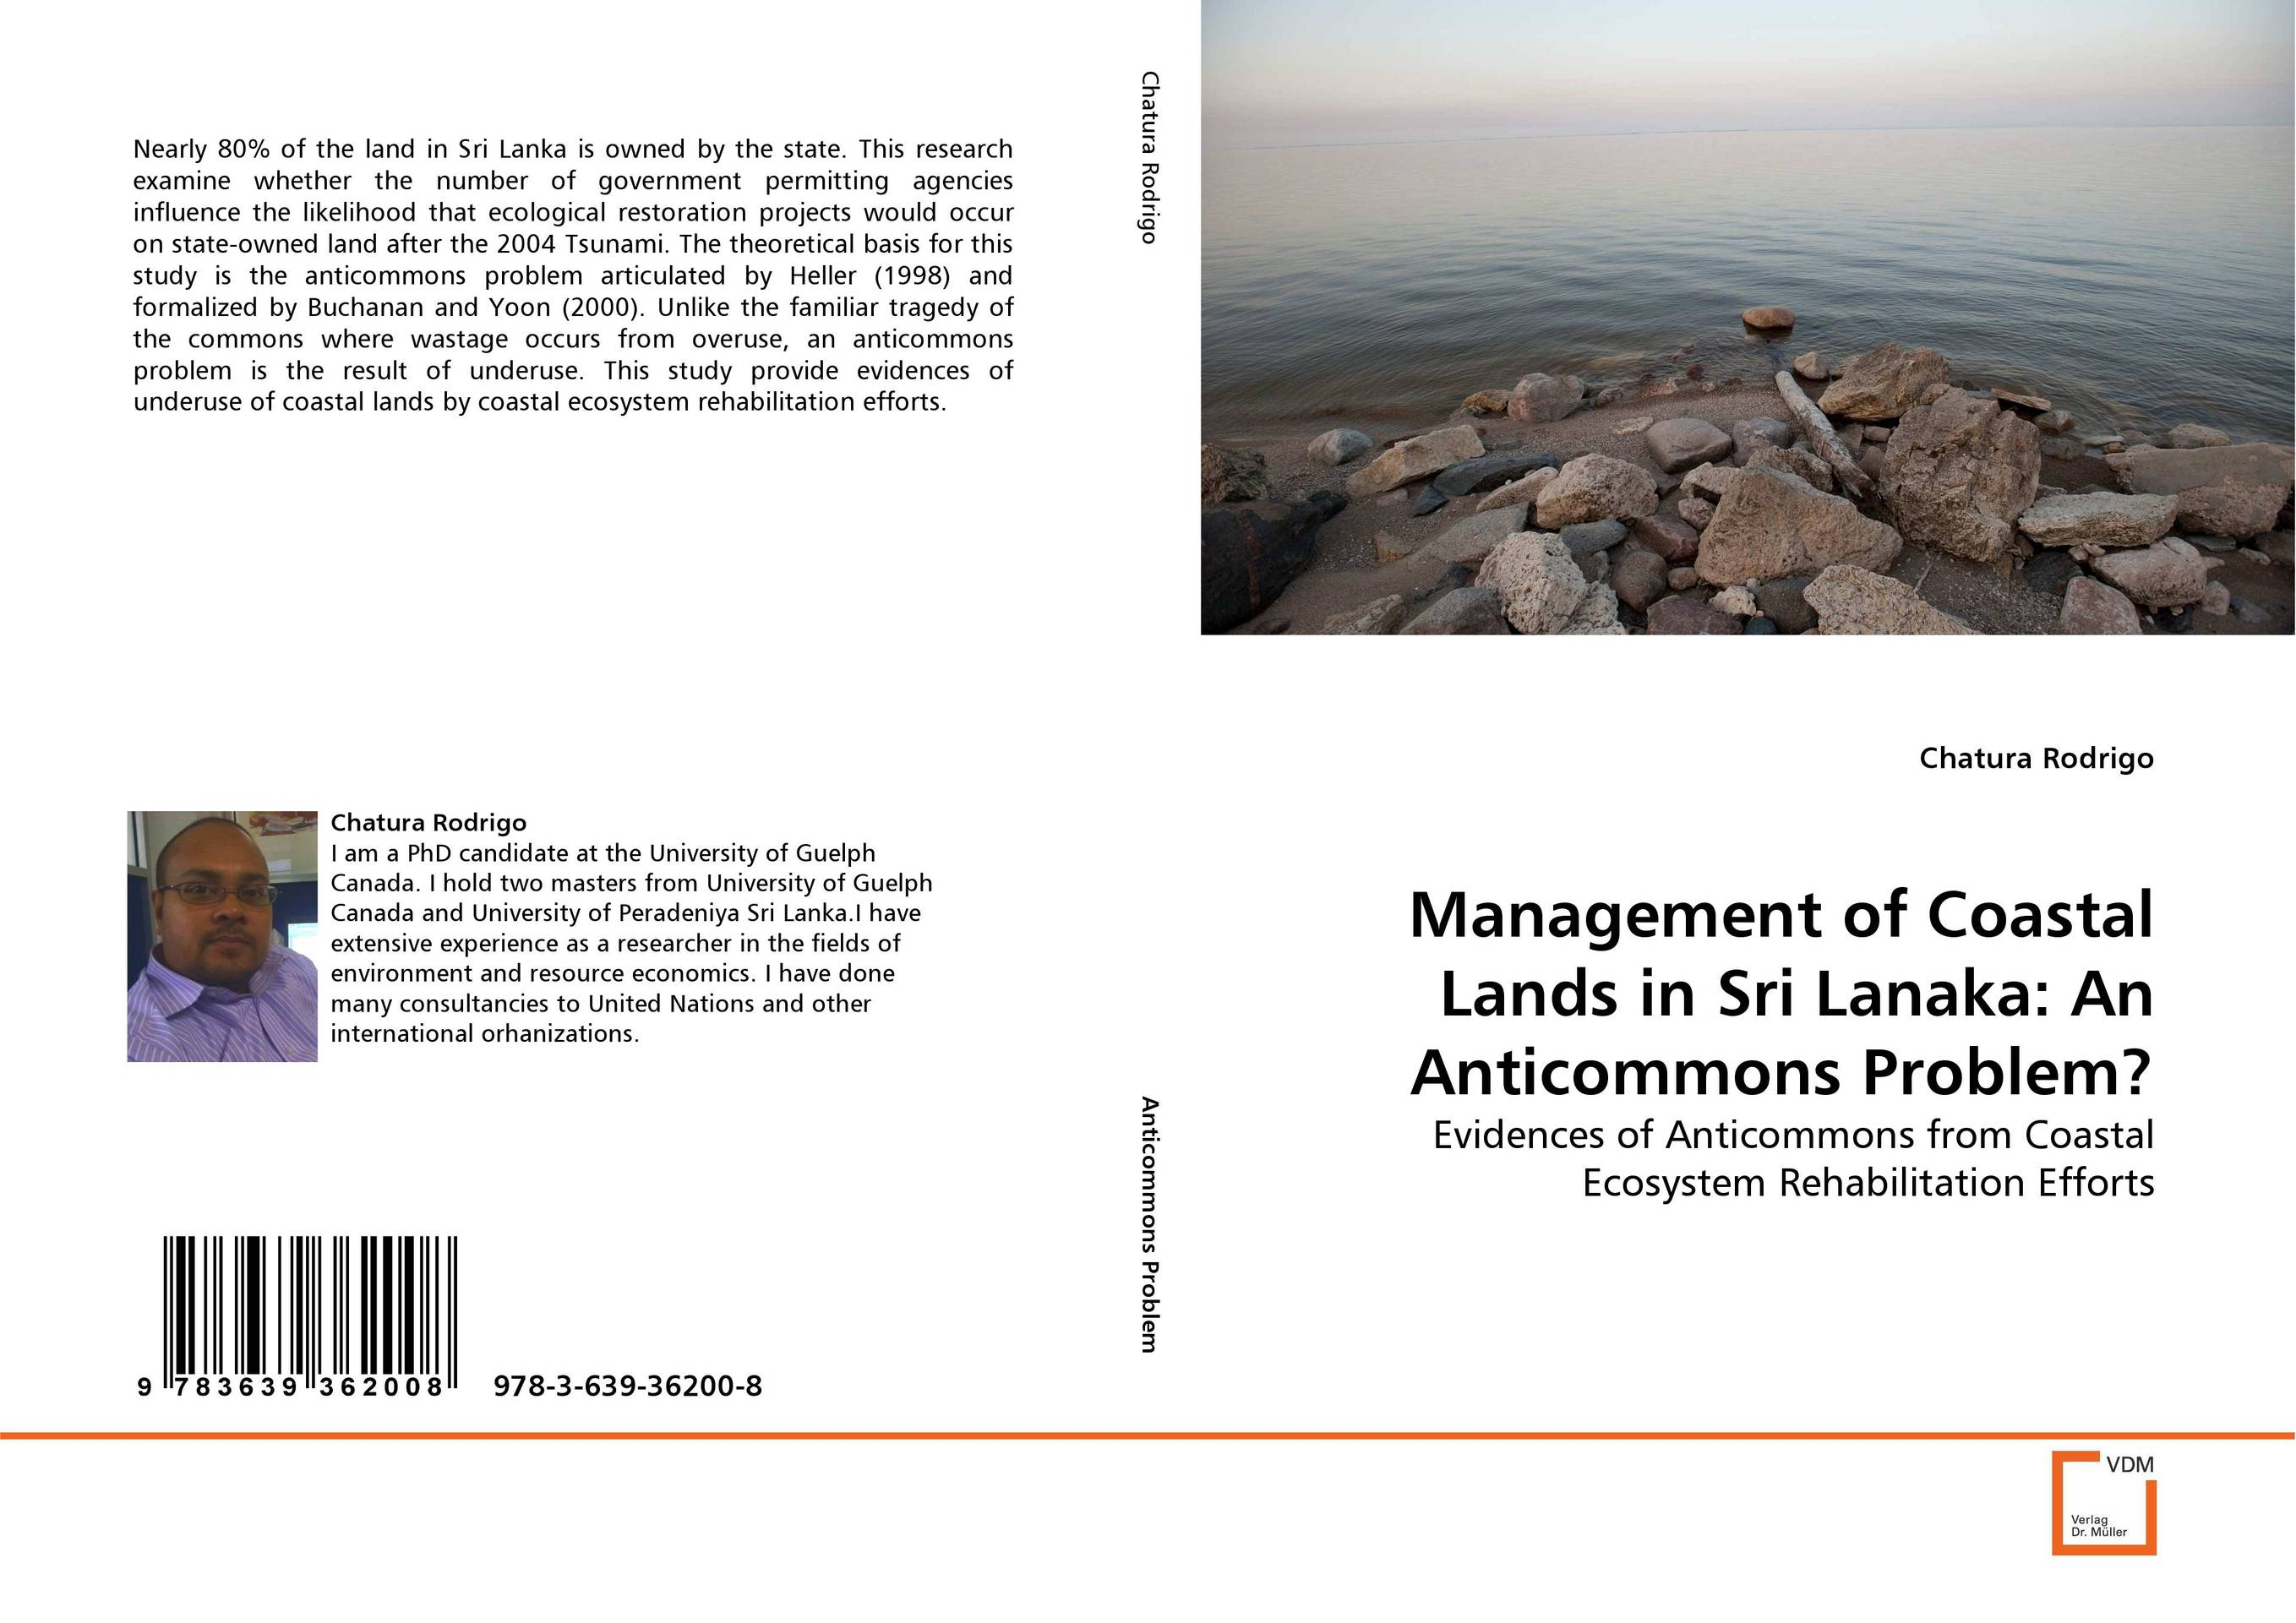 Management of Coastal Lands in Sri Lanaka: An Anticommons Problem? affair of state an